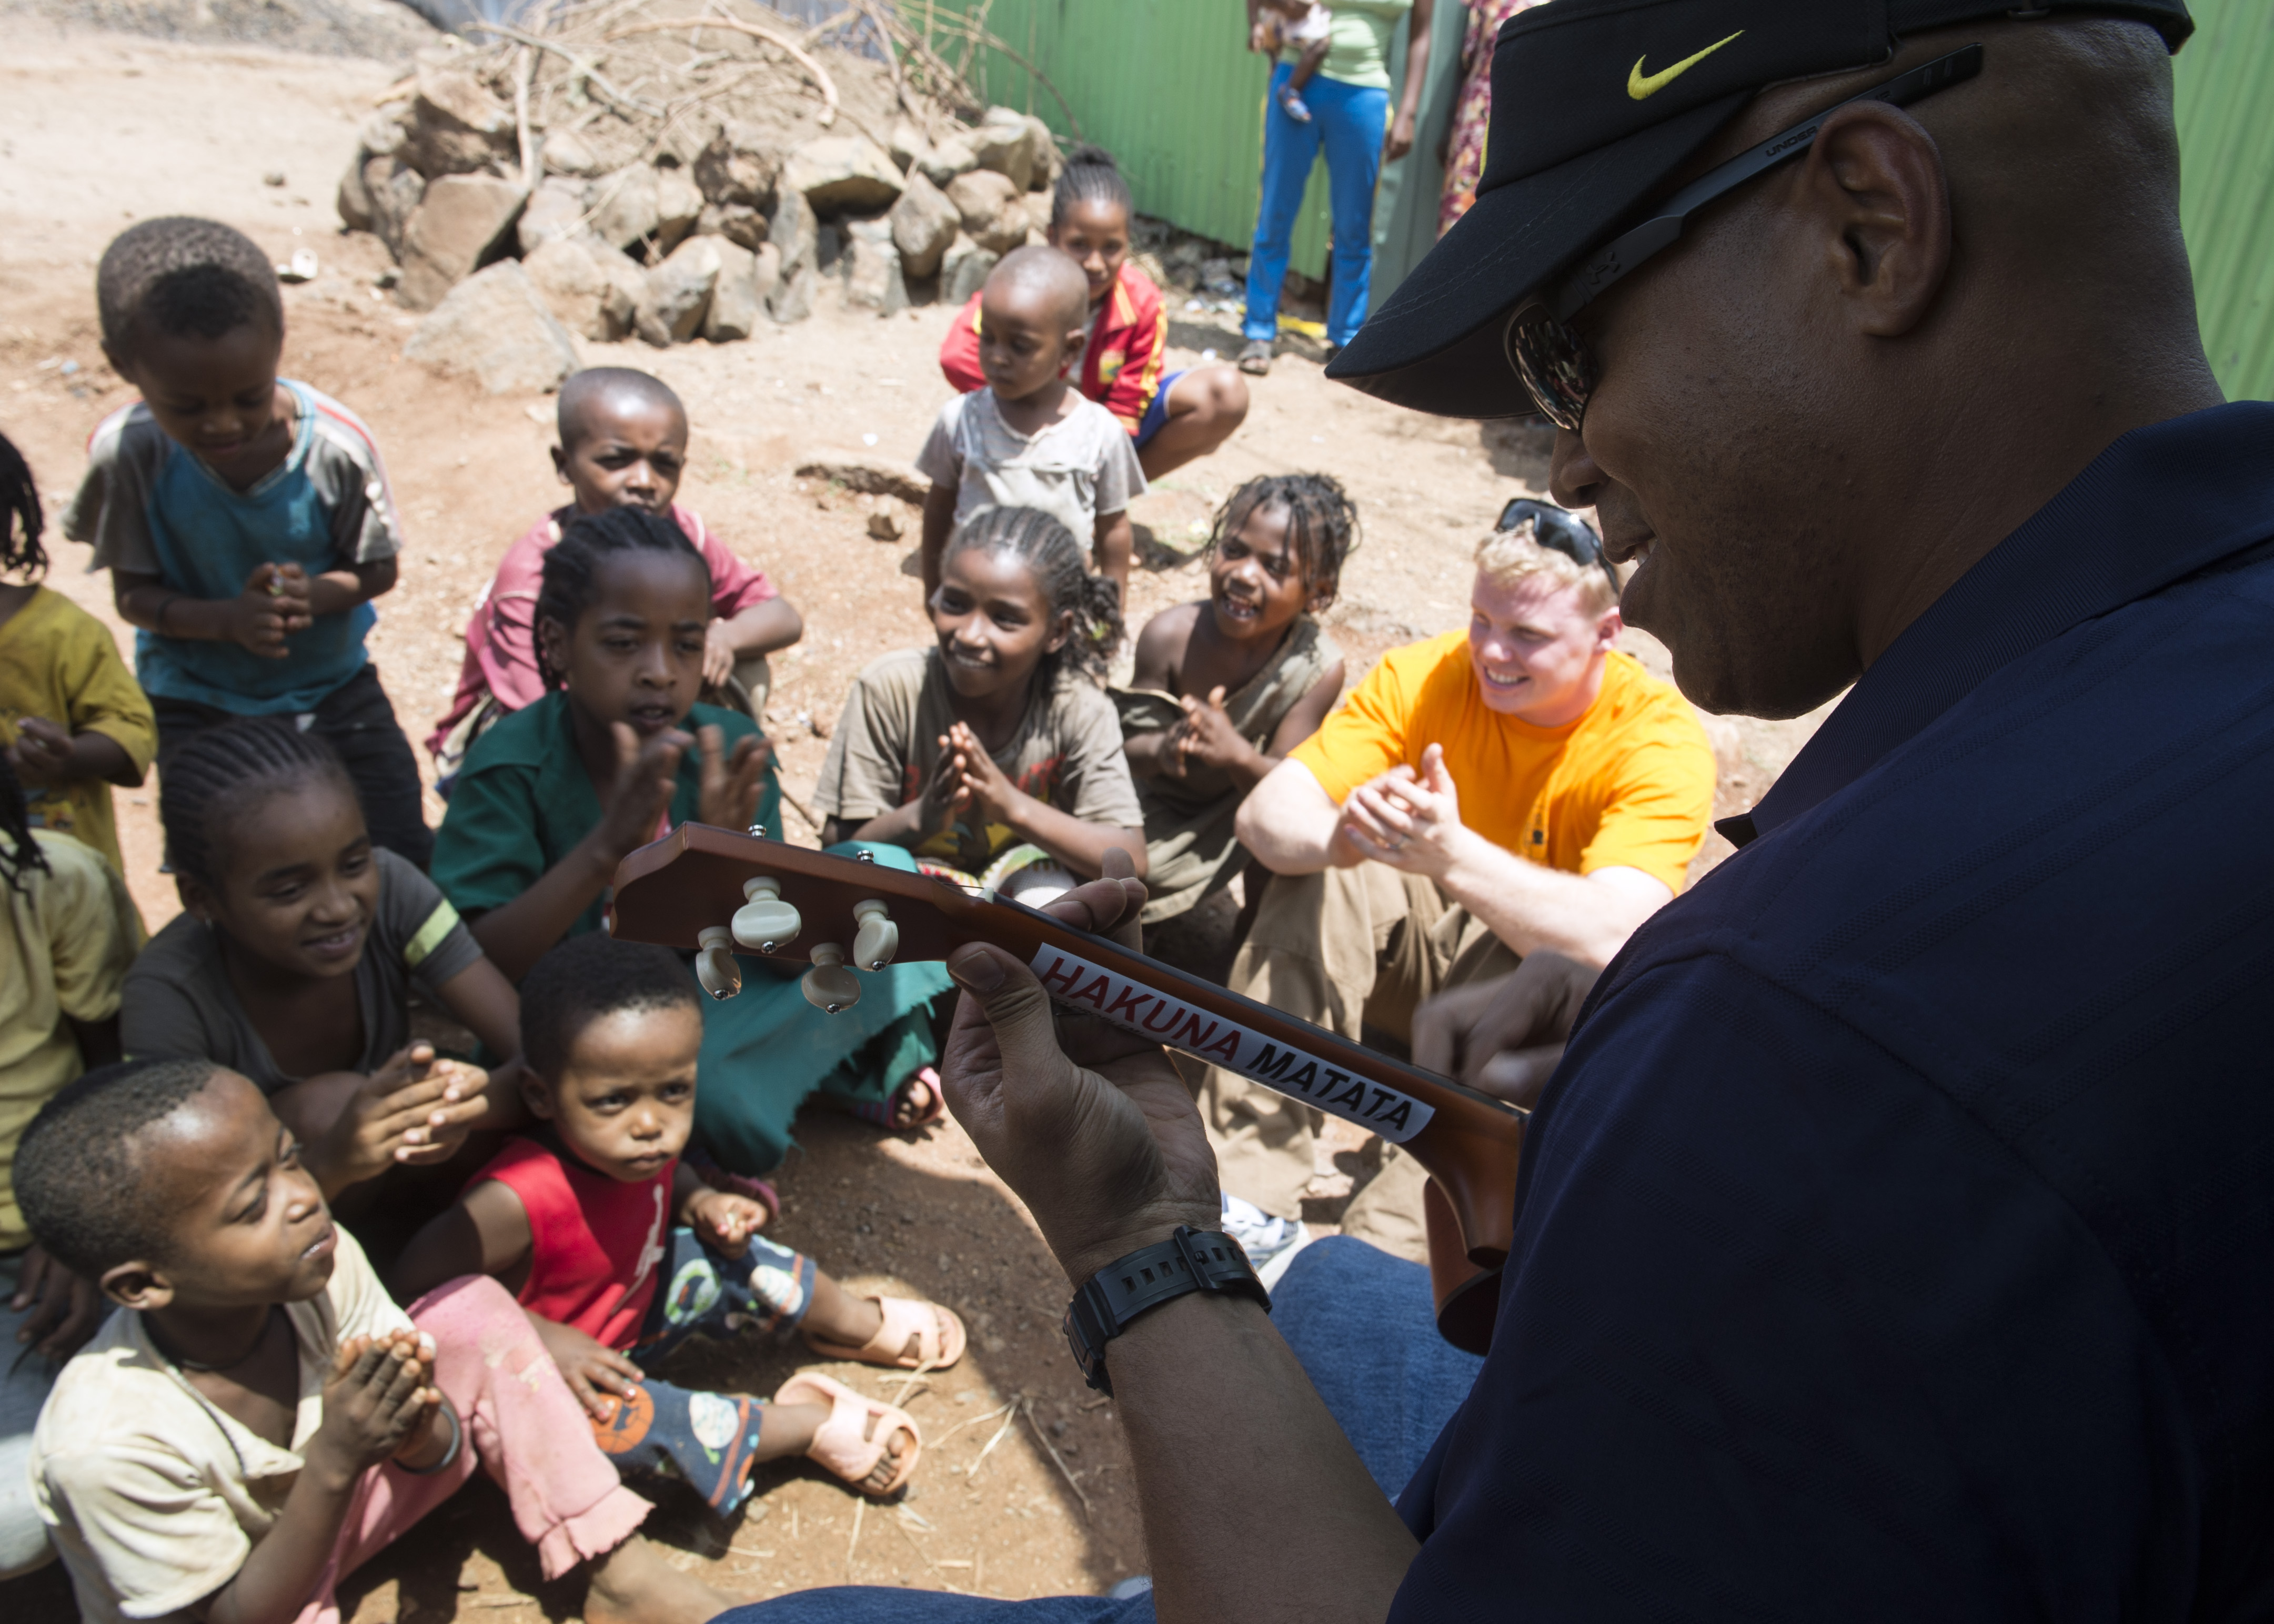 U.S. Army Chaplain (Maj.) Lawrence Allison, Combined Joint Task Force-Horn of Africa Religious Affairs deputy director, plays the ukulele to a group of orphans in East Africa, Apr. 3, 2015.  Allison played several Hawaiian songs to entertain and boost the morale of the children. (U.S. Air Force photo by Staff Sgt. Kevin Iinuma)